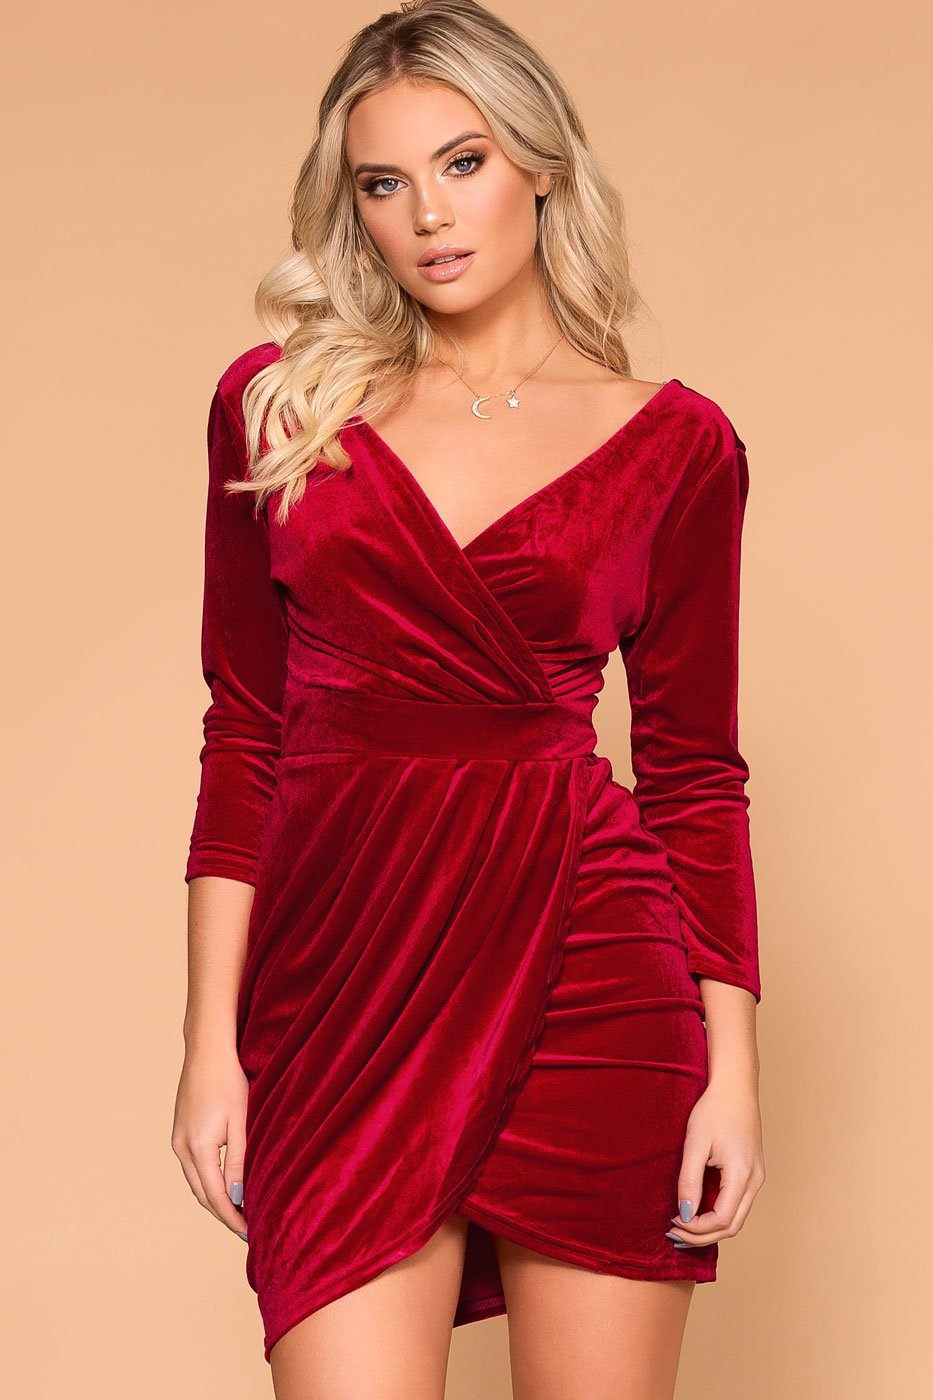 Casual Red Dresses